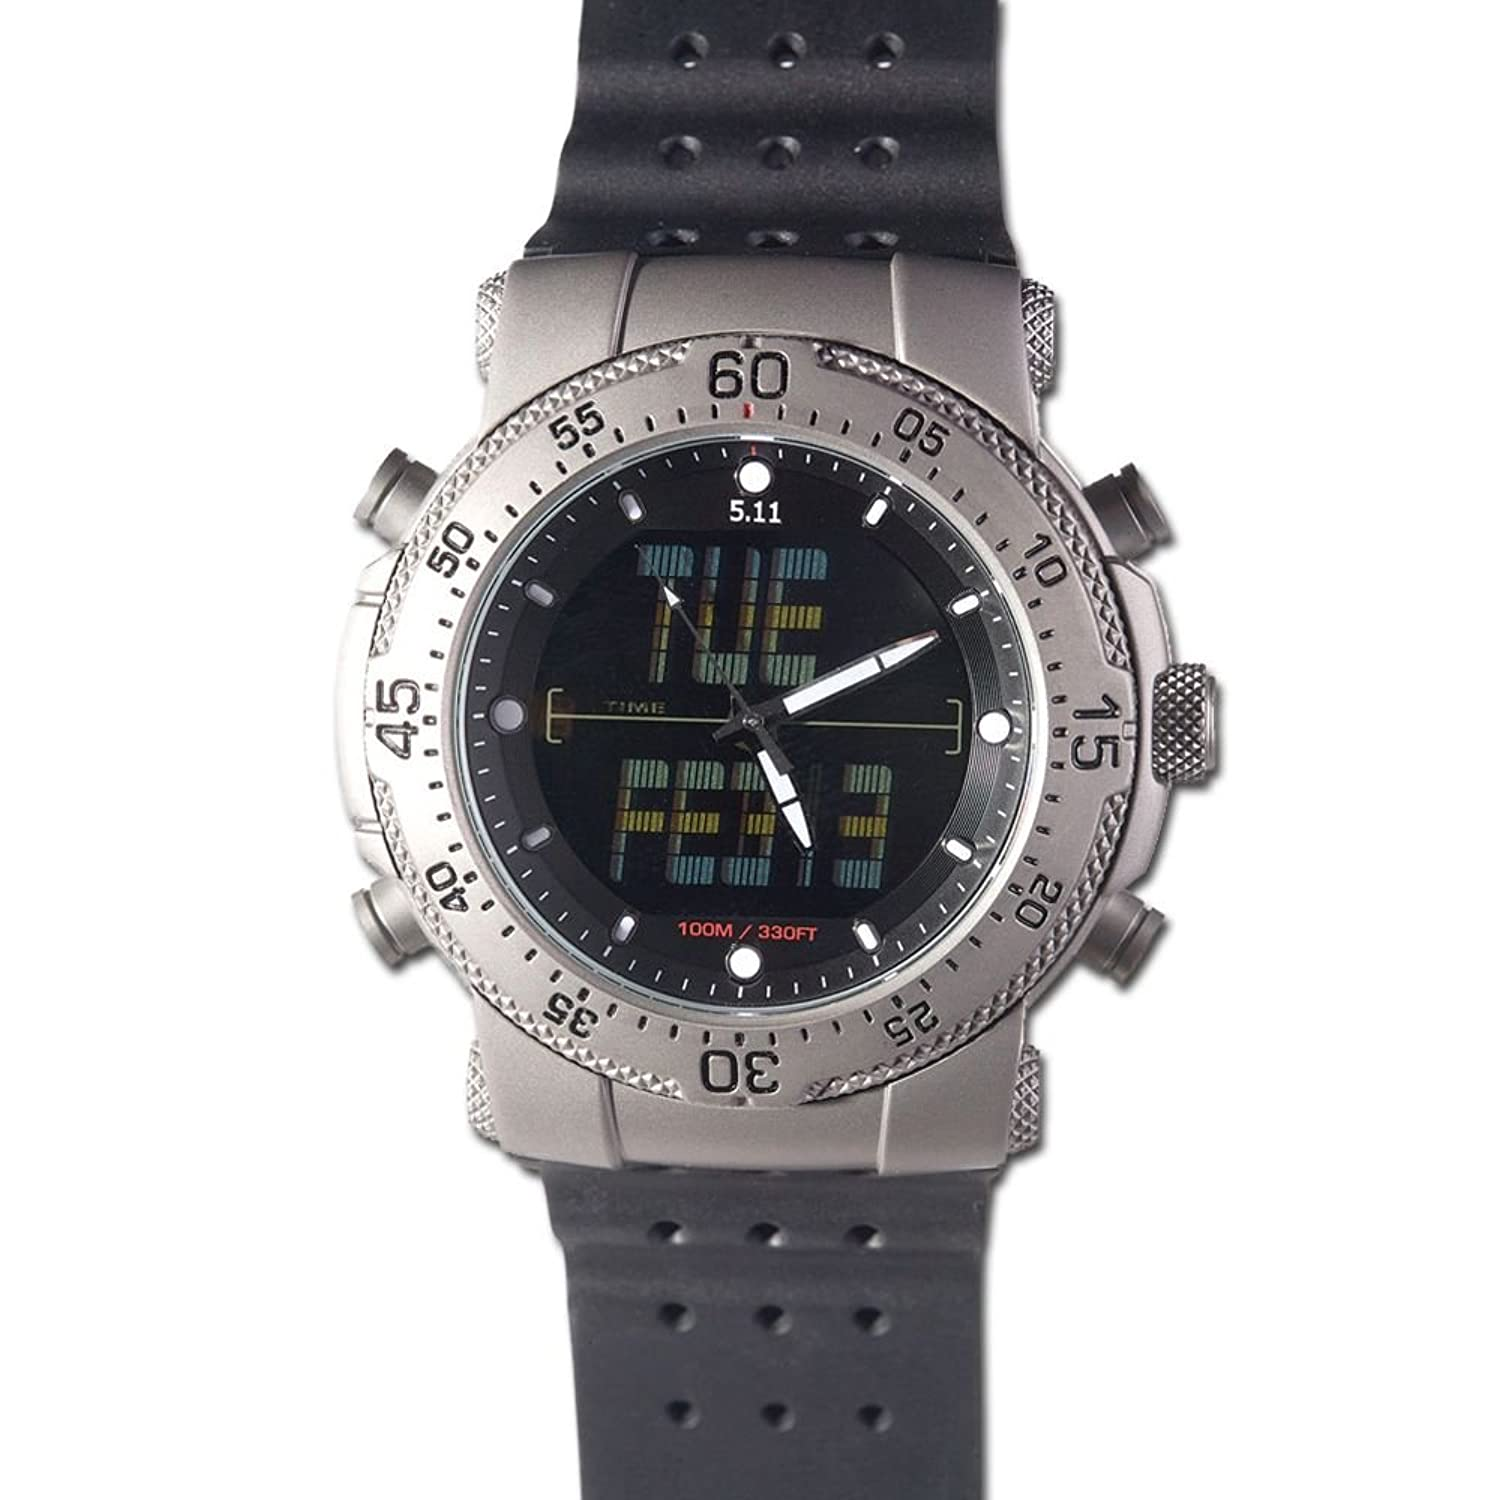 5.11 H.R.T. Titanium Watch